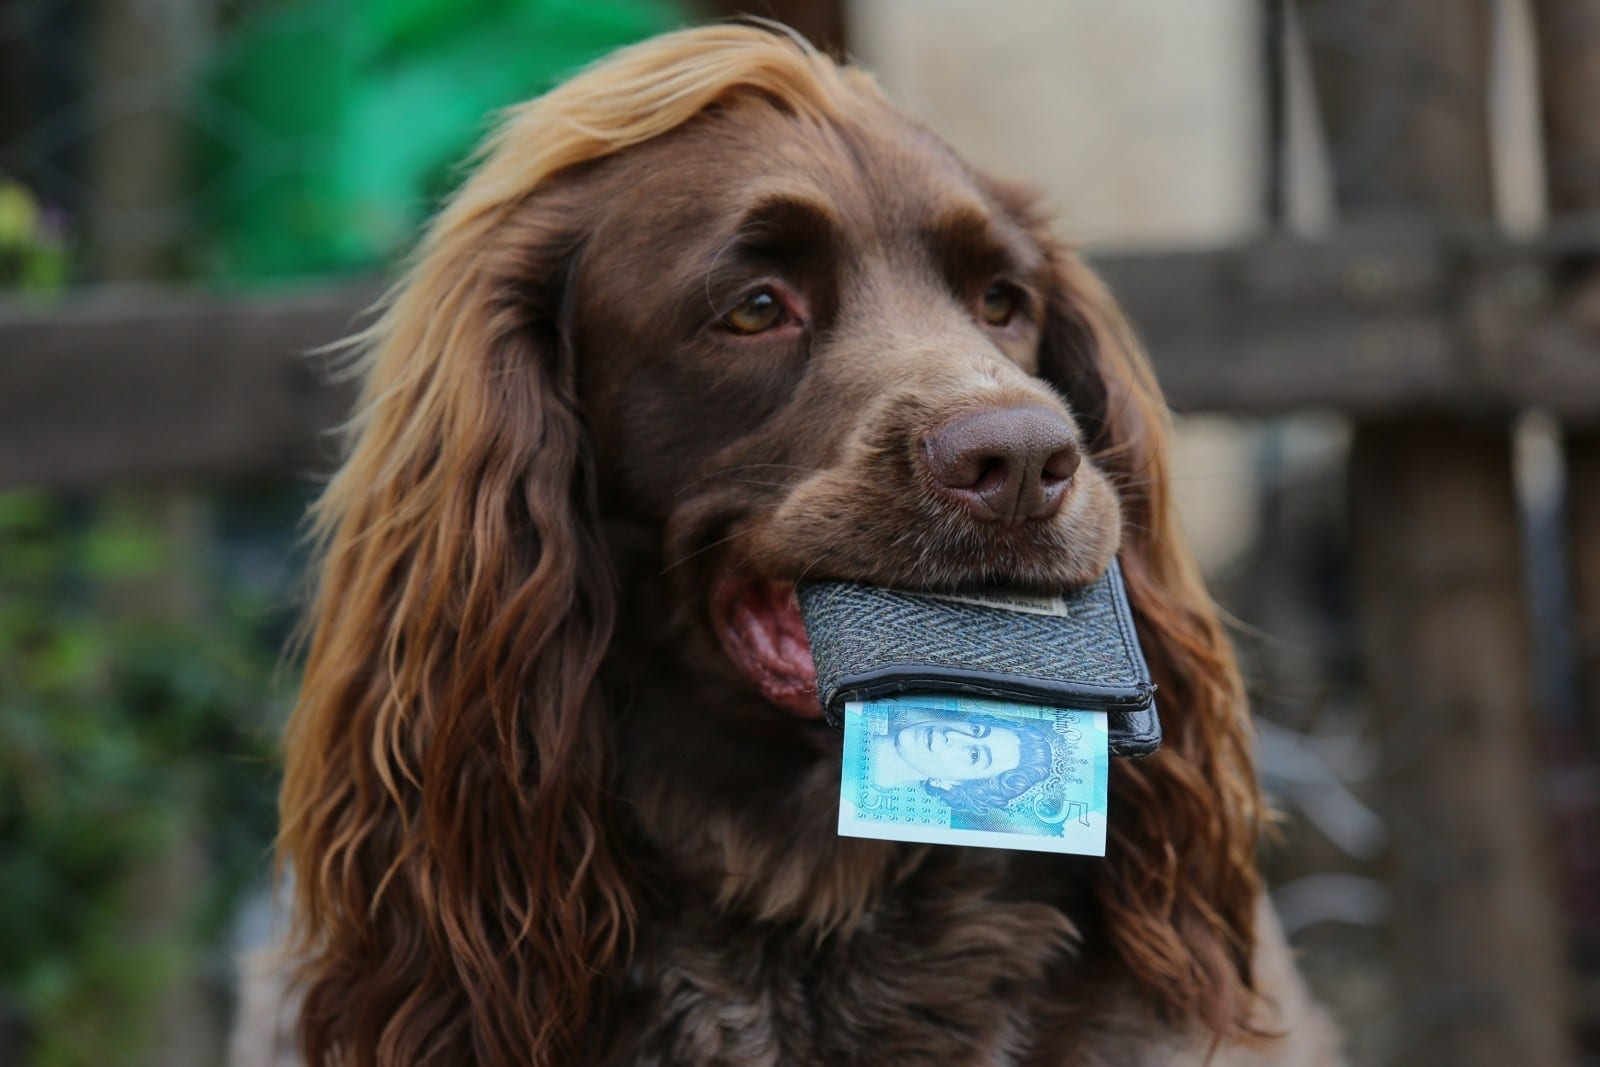 Pampered Dog Gets £5 A Week Pocket Money To Keep In His Own Wallet